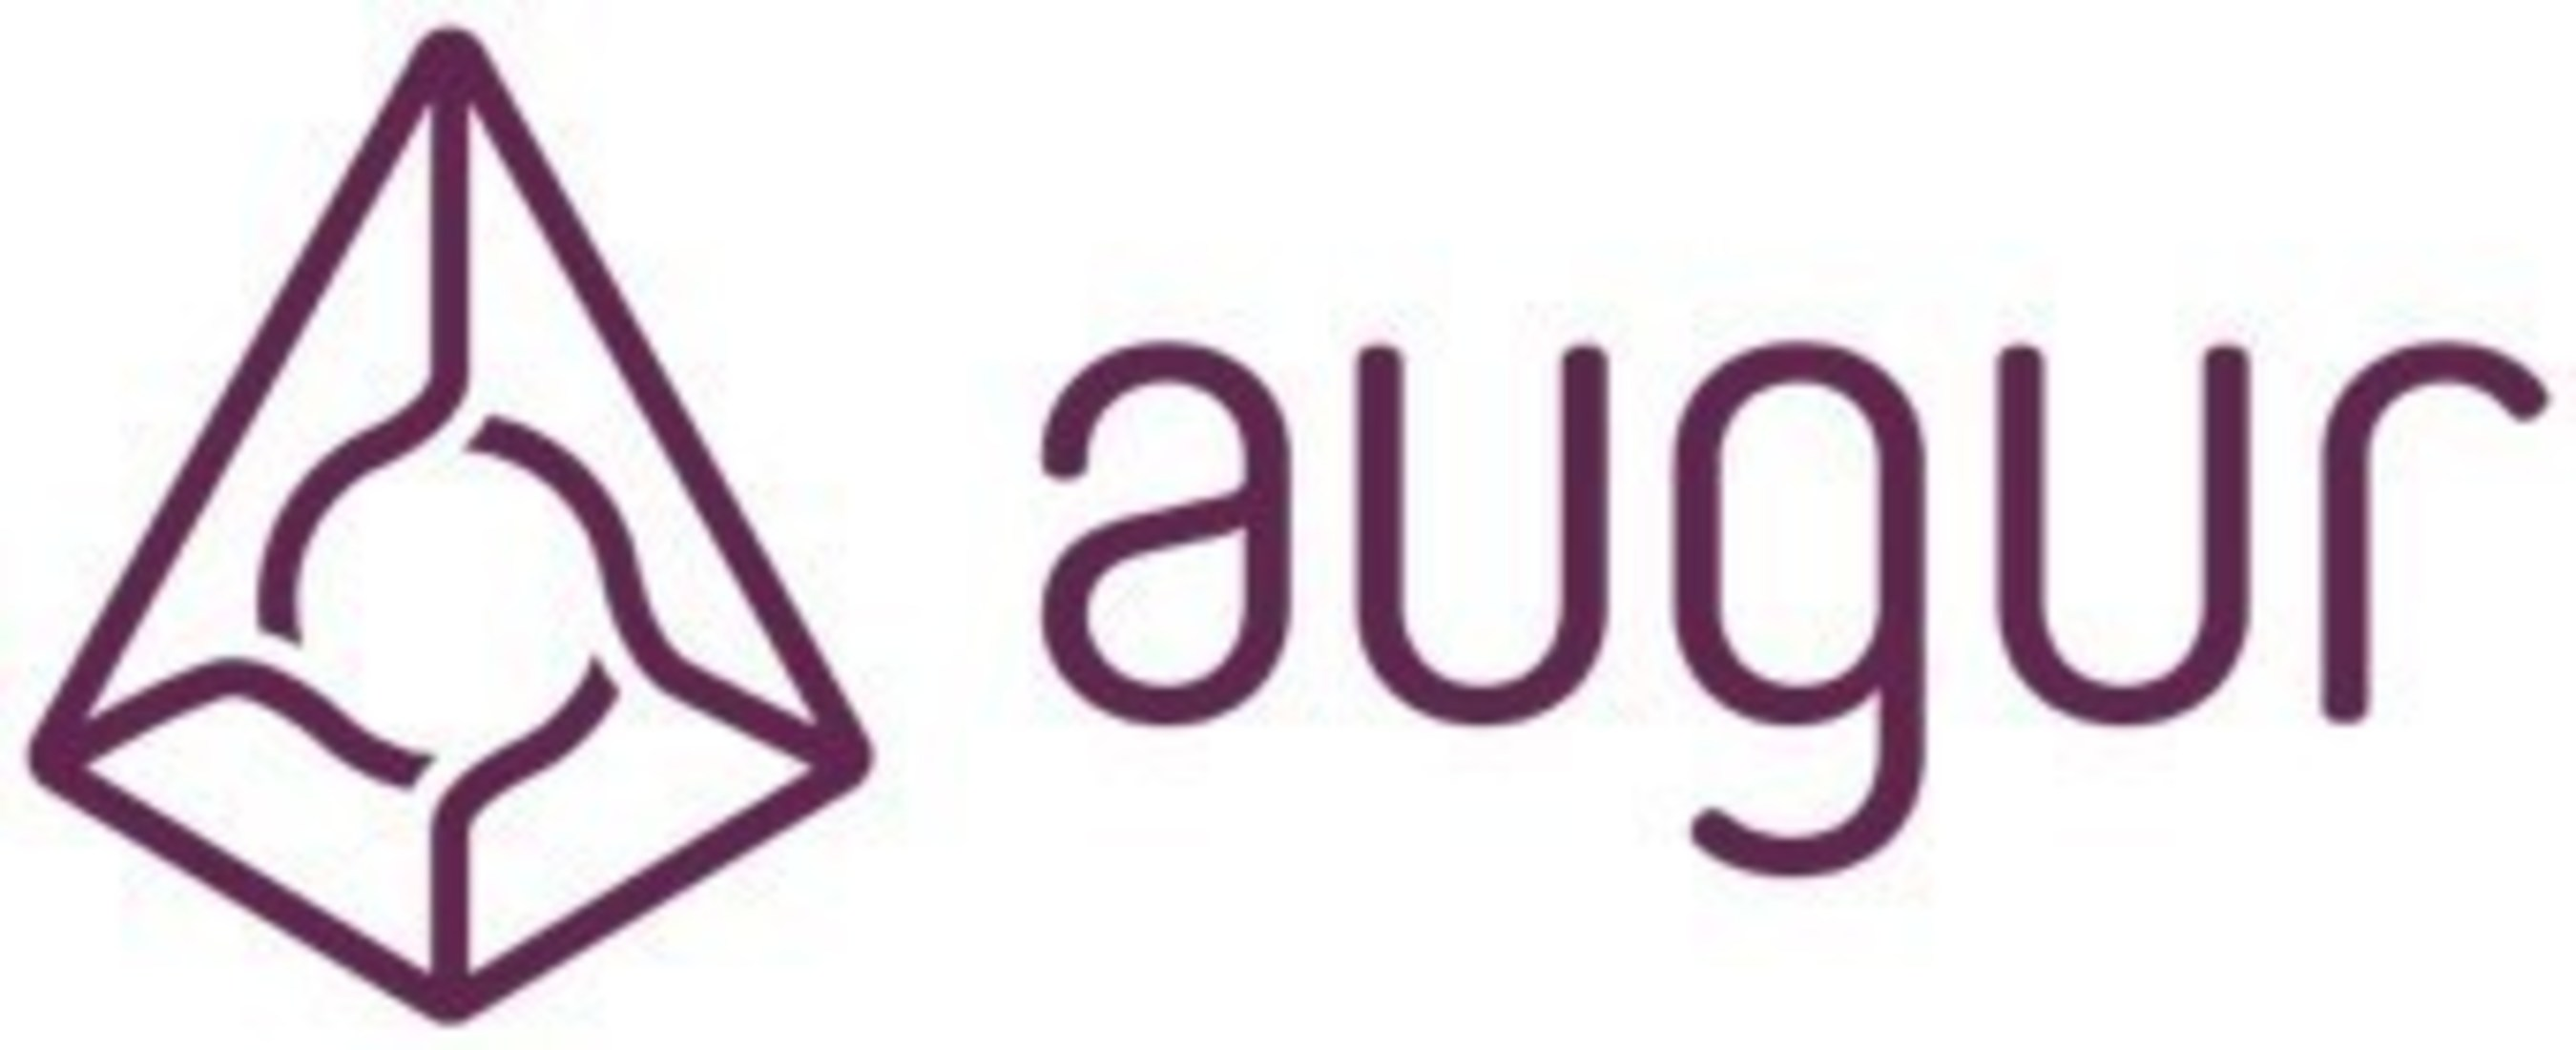 Decentralized Prediction Market Augur Raises More Than Oculus Rift in 3 Days of Crowdfunding